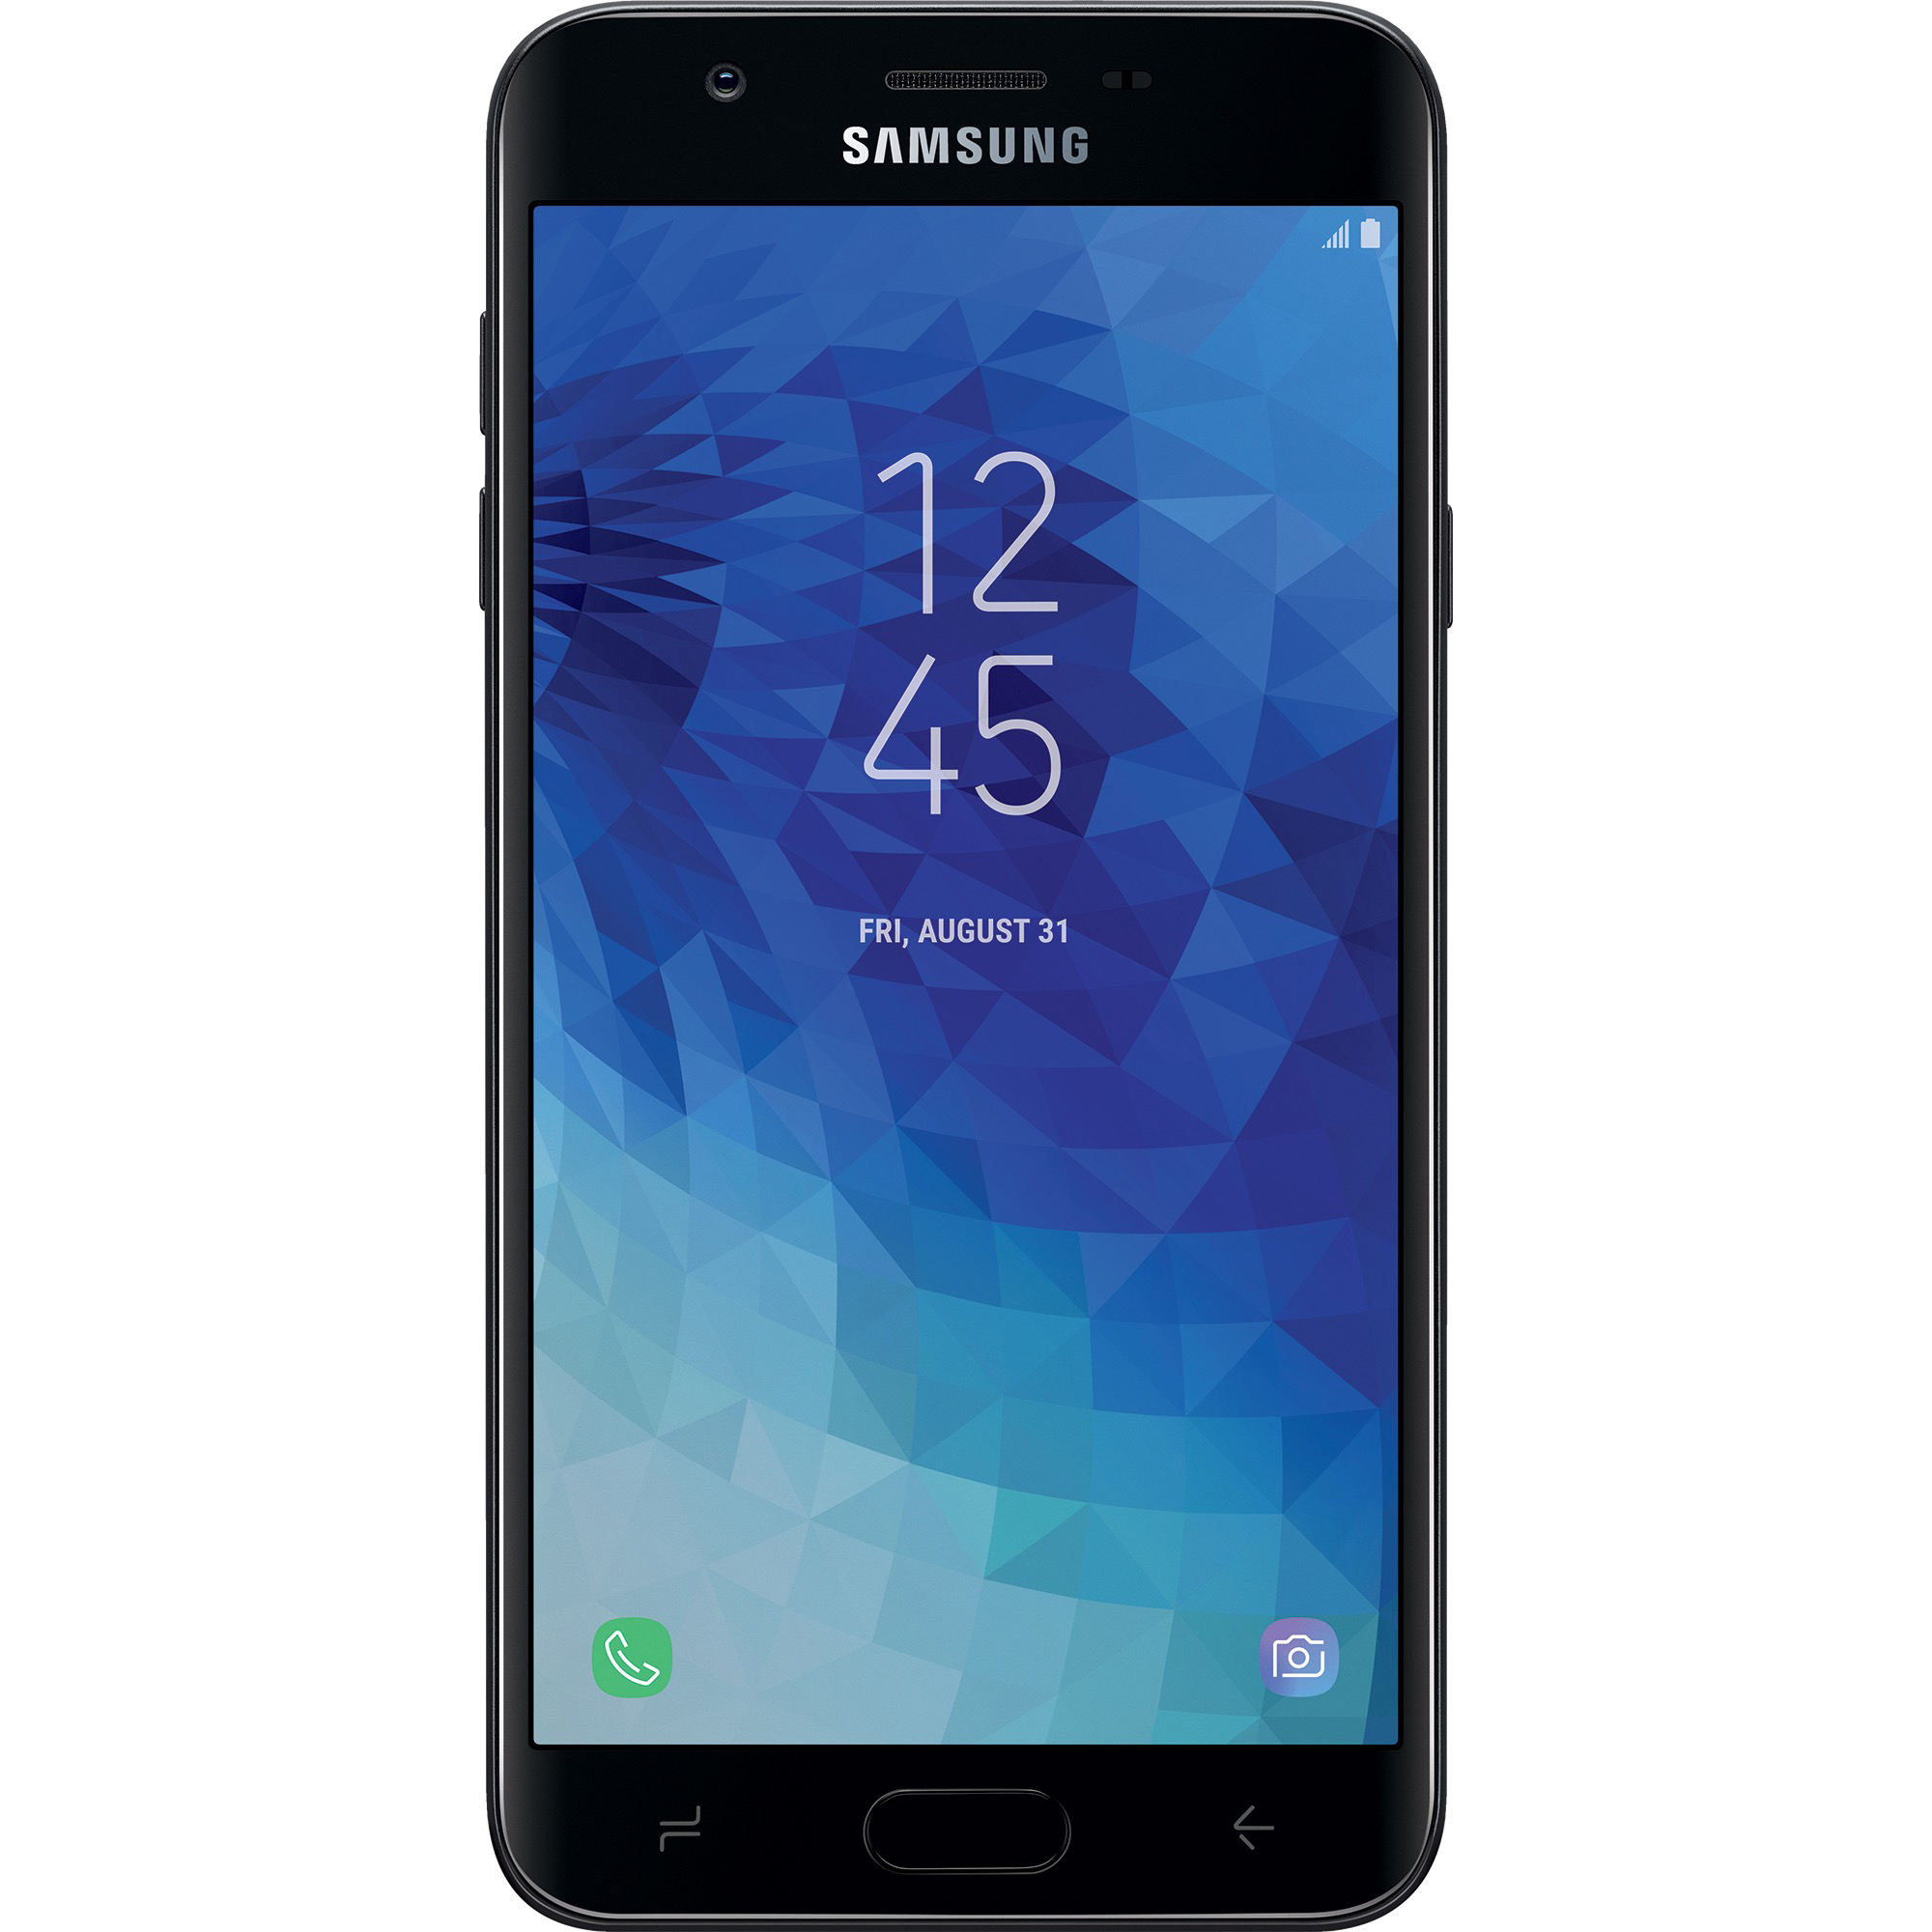 Tracfone SAMSUNG Galaxy J7 Crown, 16GB Black - Prepaid Smartphone